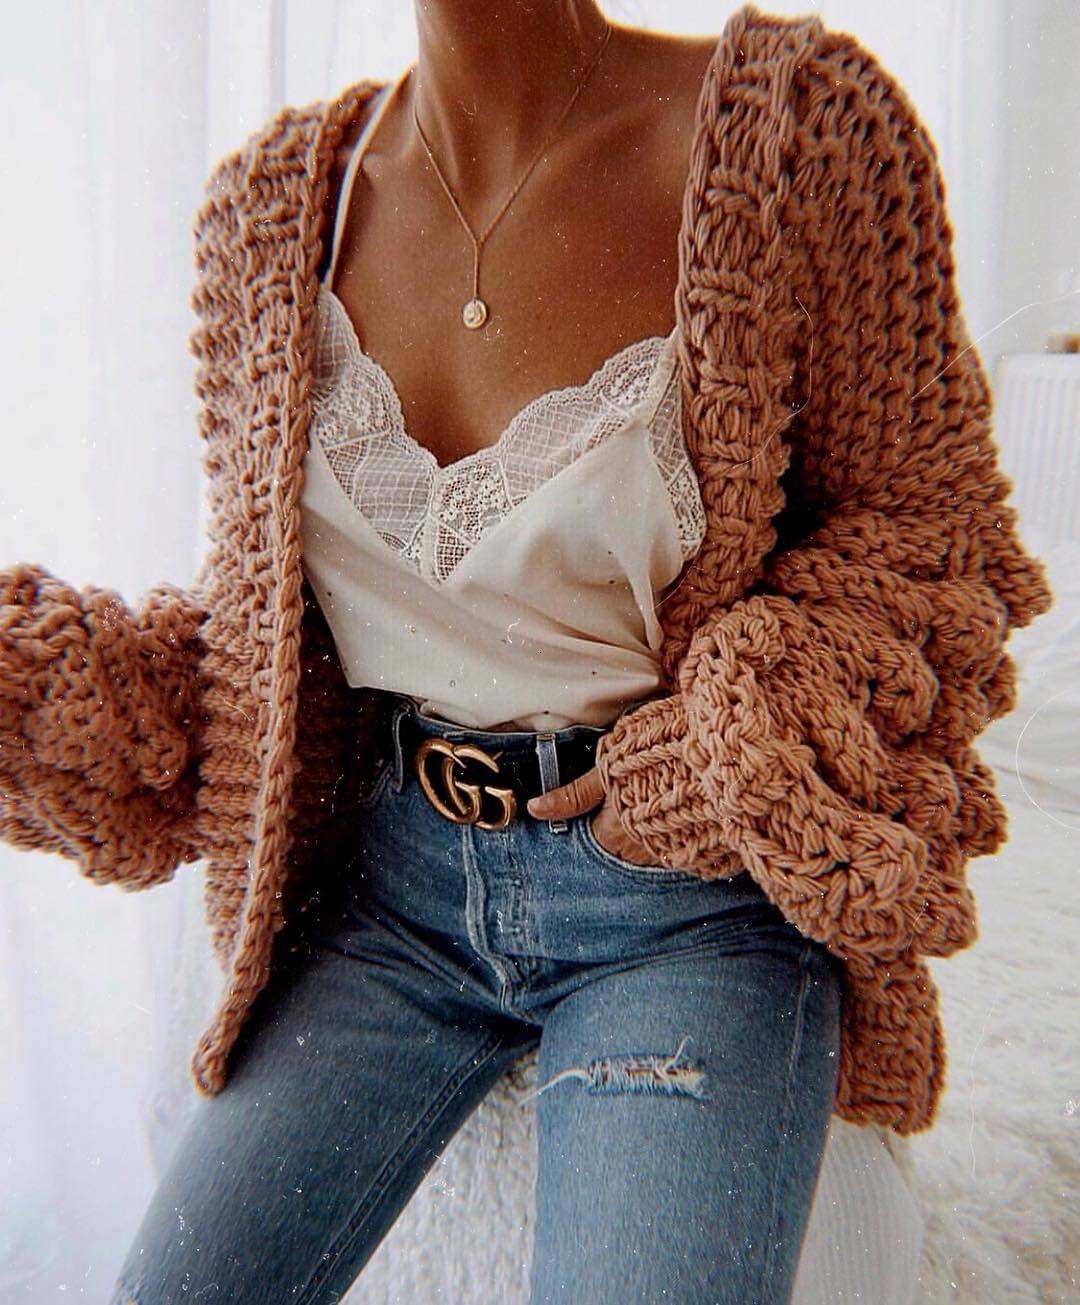 Chunky Knit Cardigan With White Sliptank top Tucked in Blue Jeans 2019